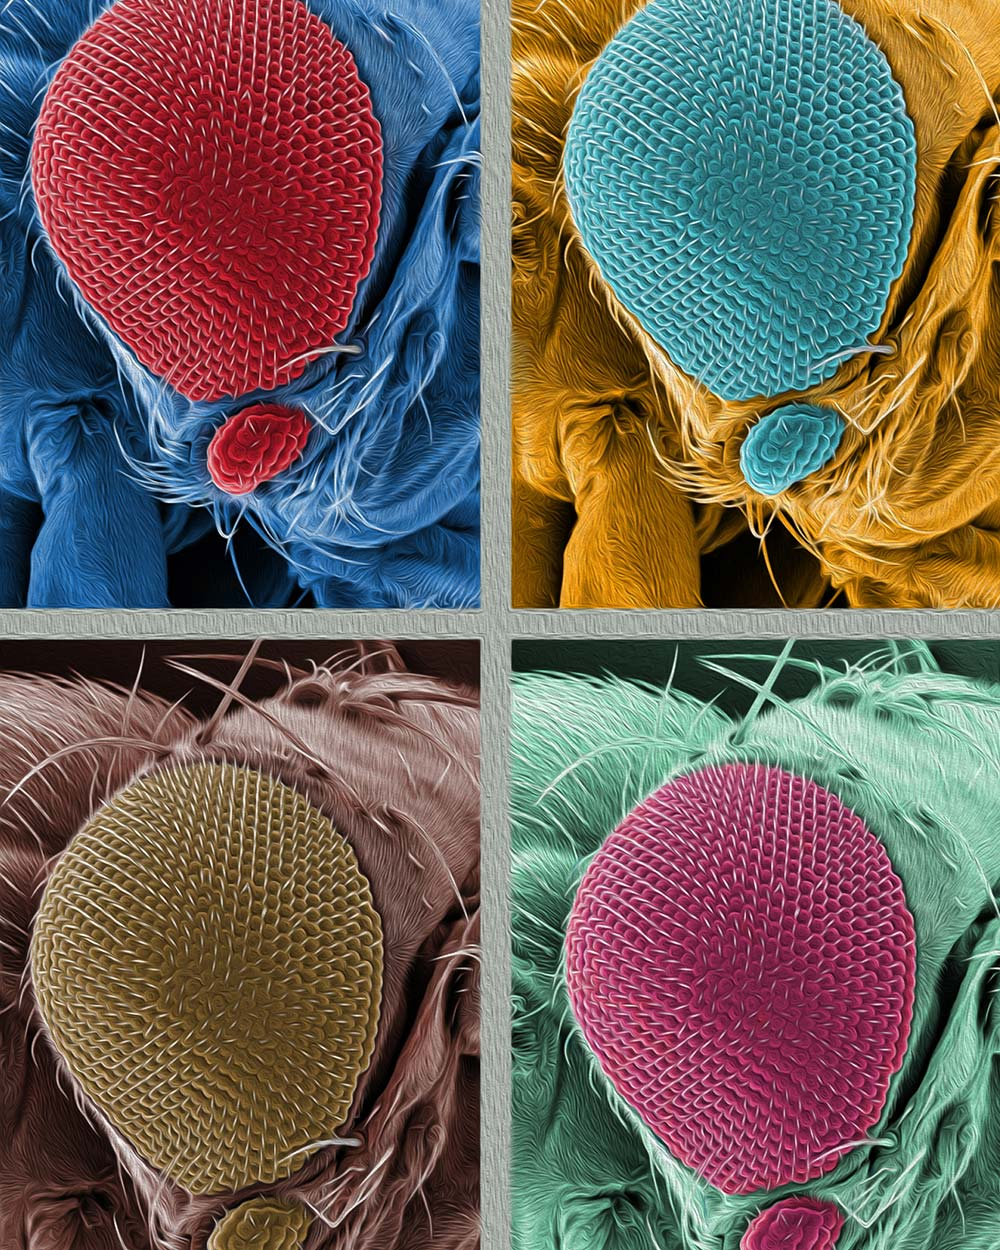 zoom in on a fly eye in 4 colors